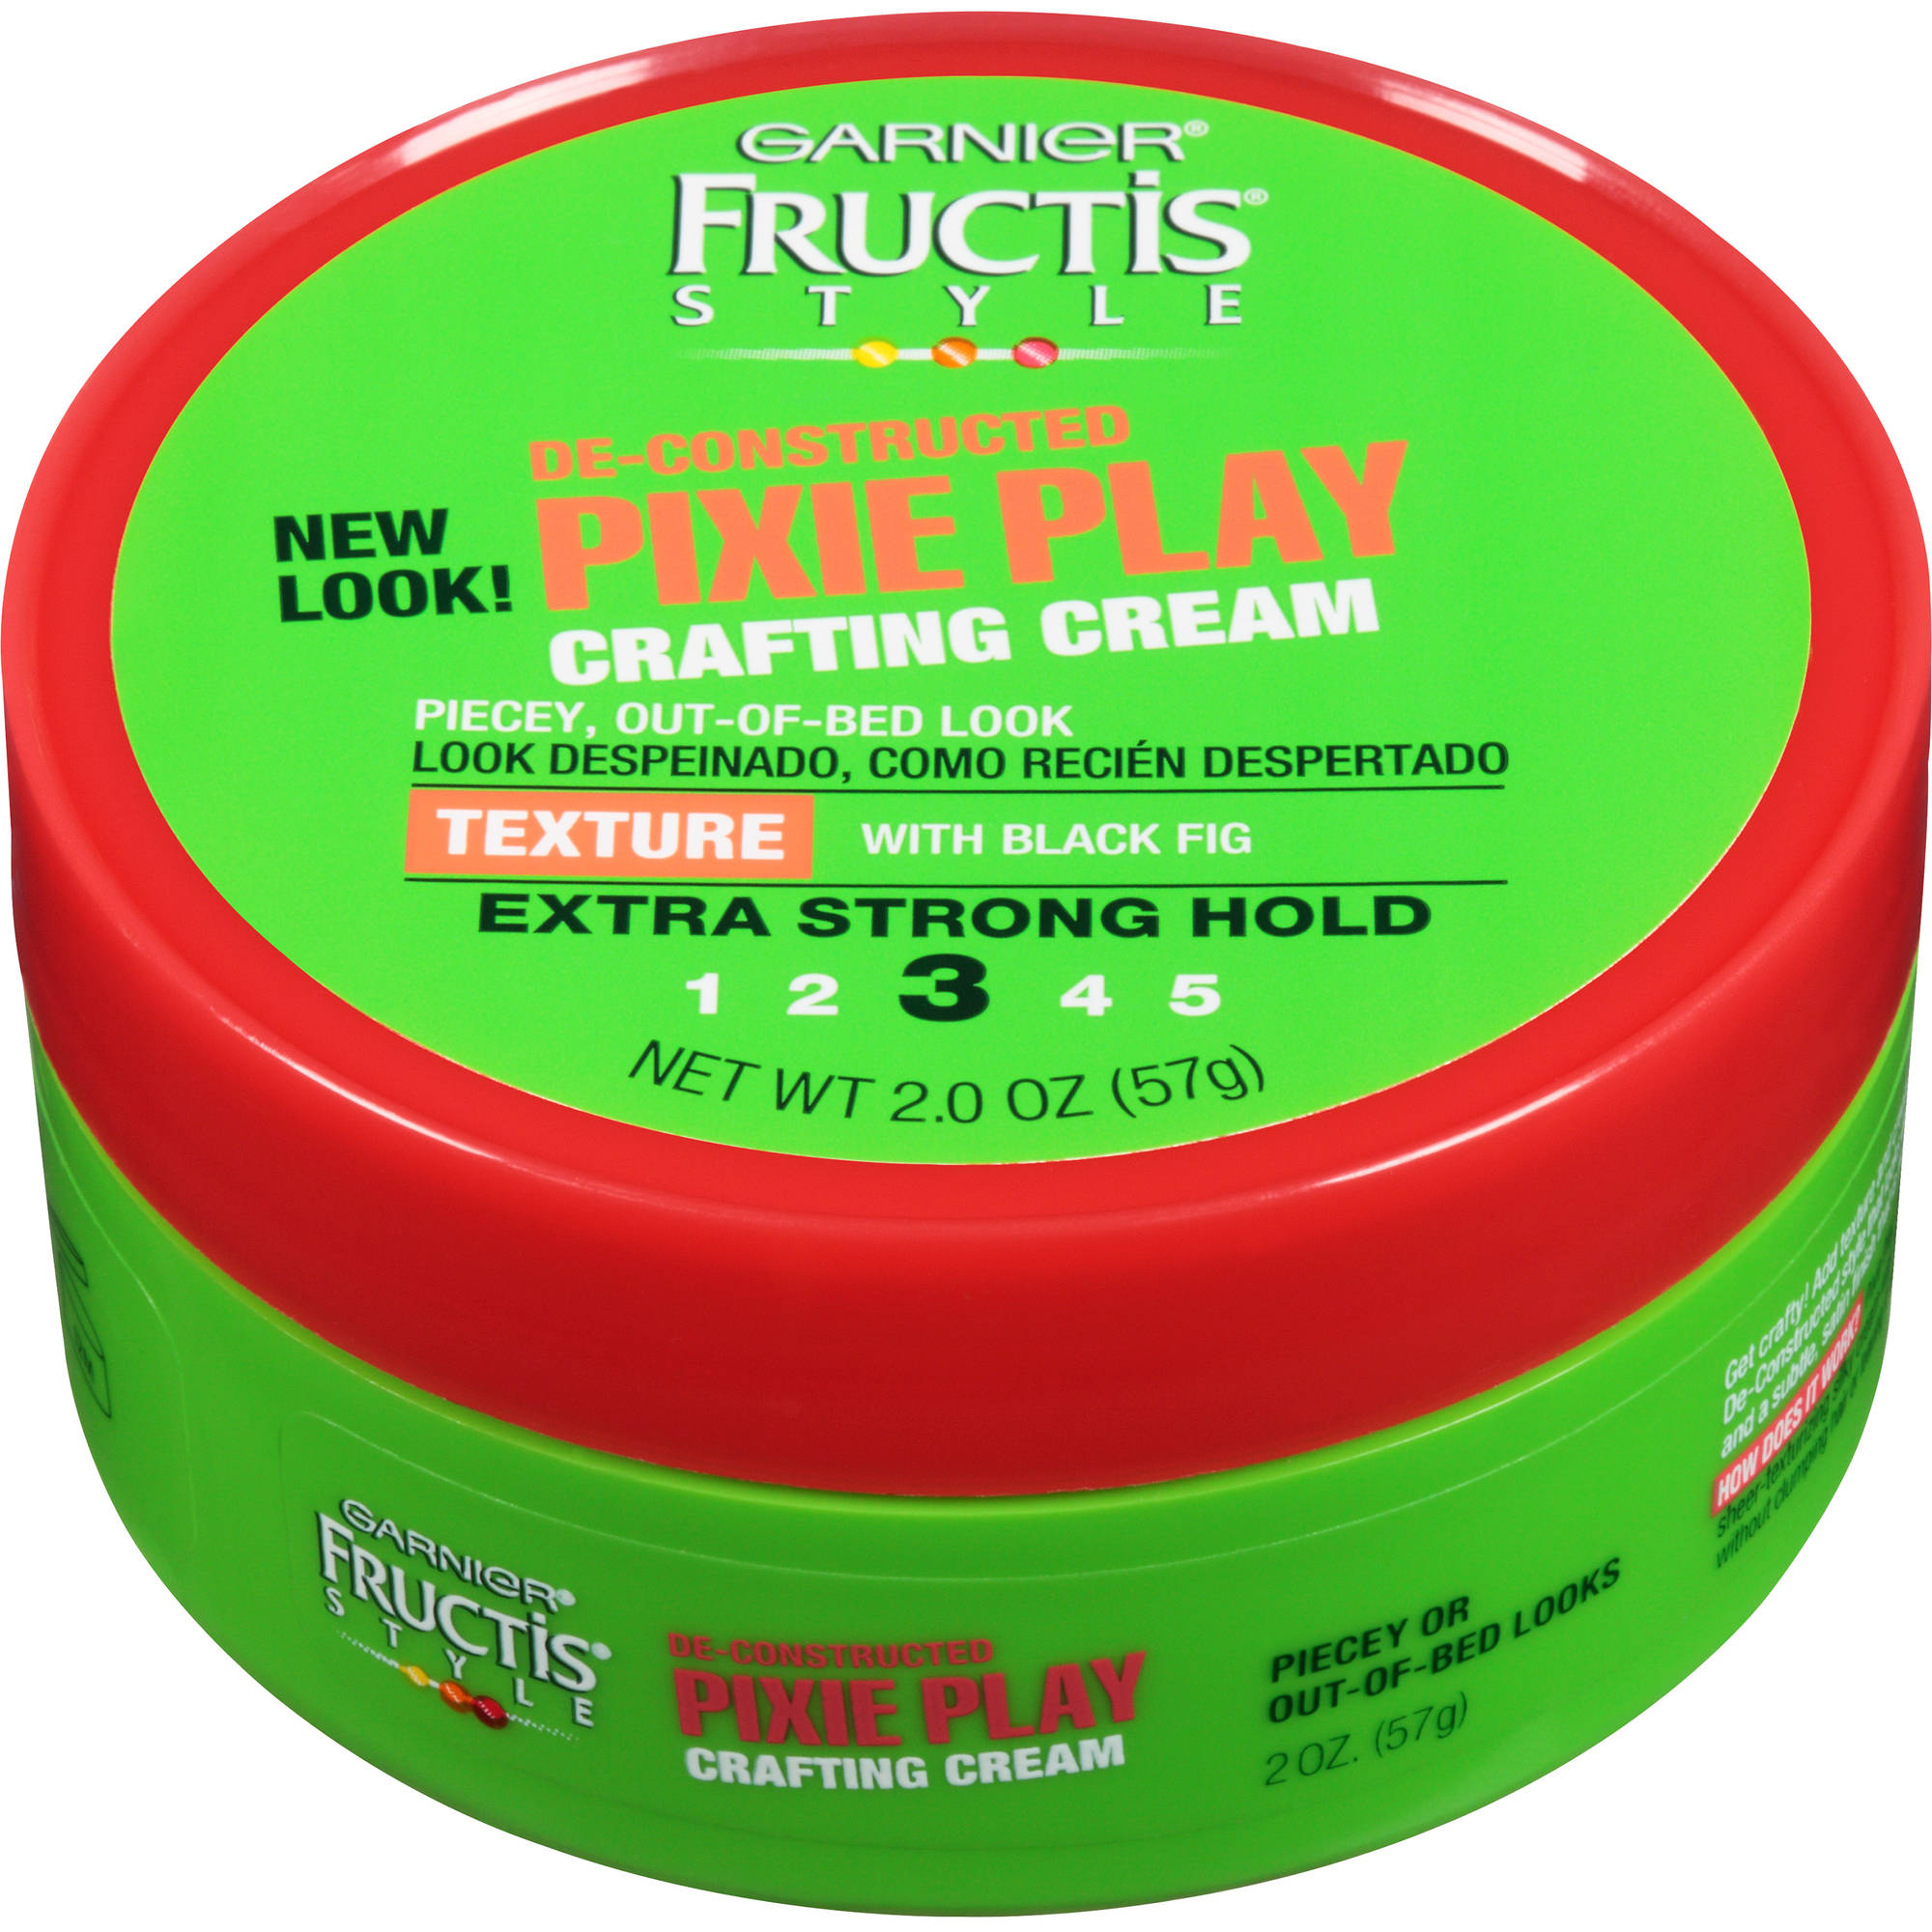 Garnier Fructis Style De-Constructed Pixie Play Extra Strong Hold Crafting Cream, 2 oz